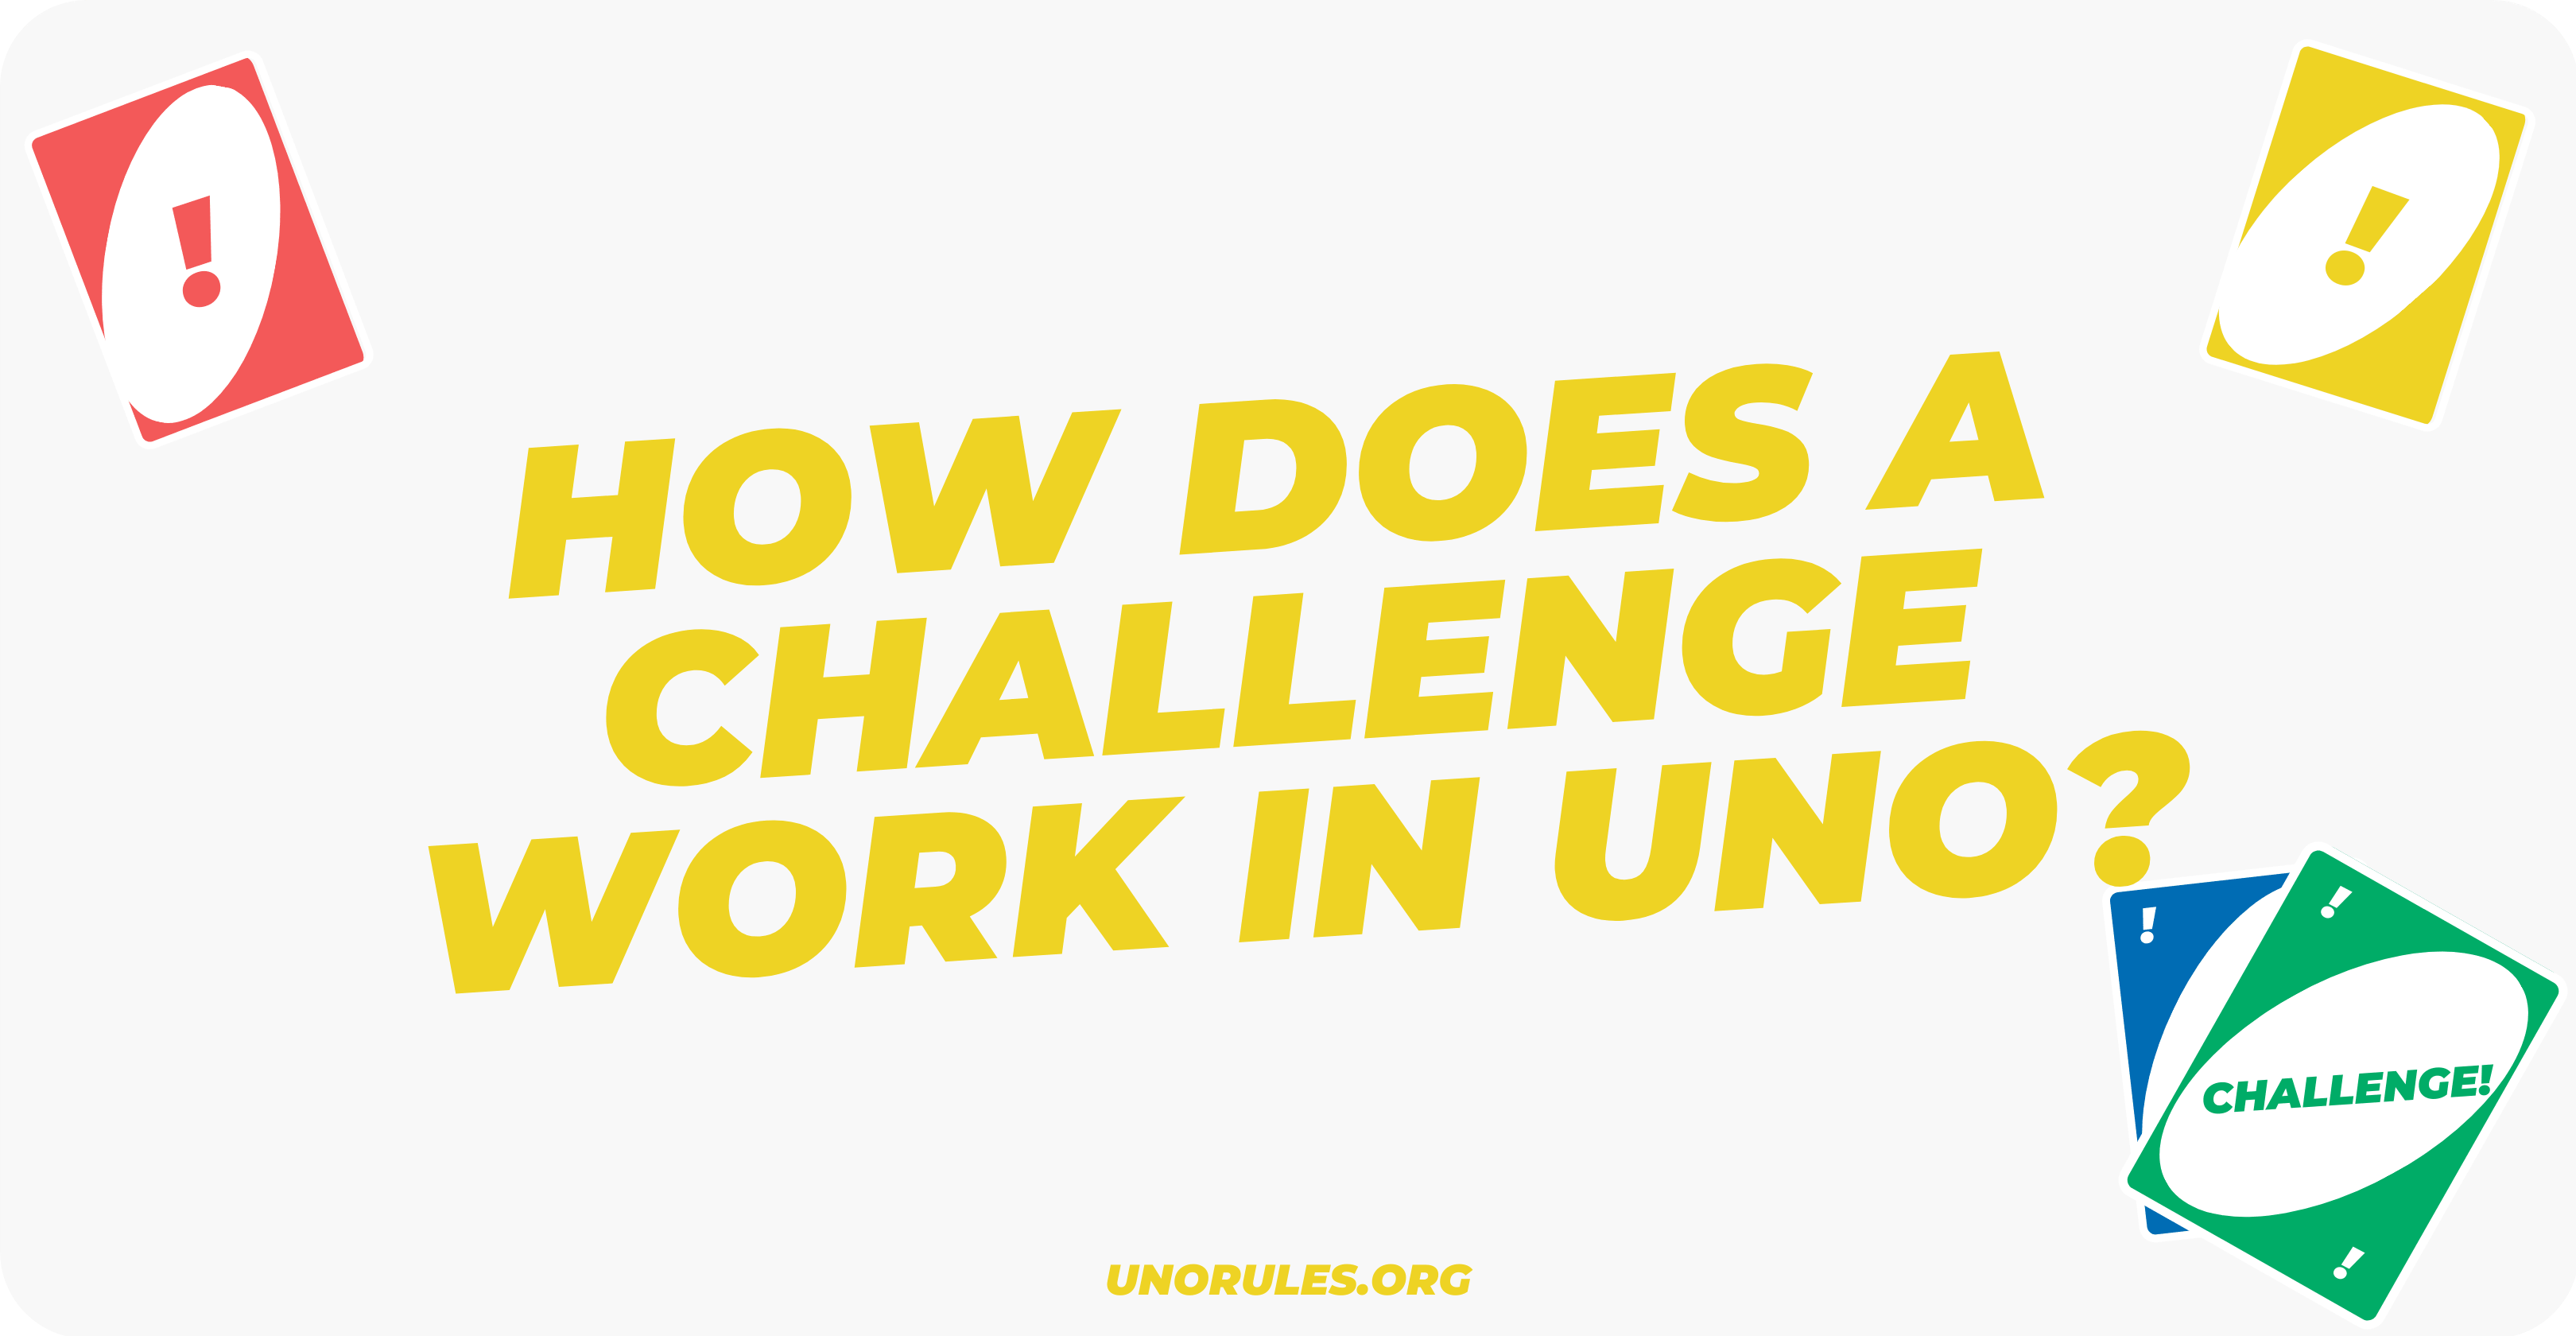 How does challenge work in Uno?